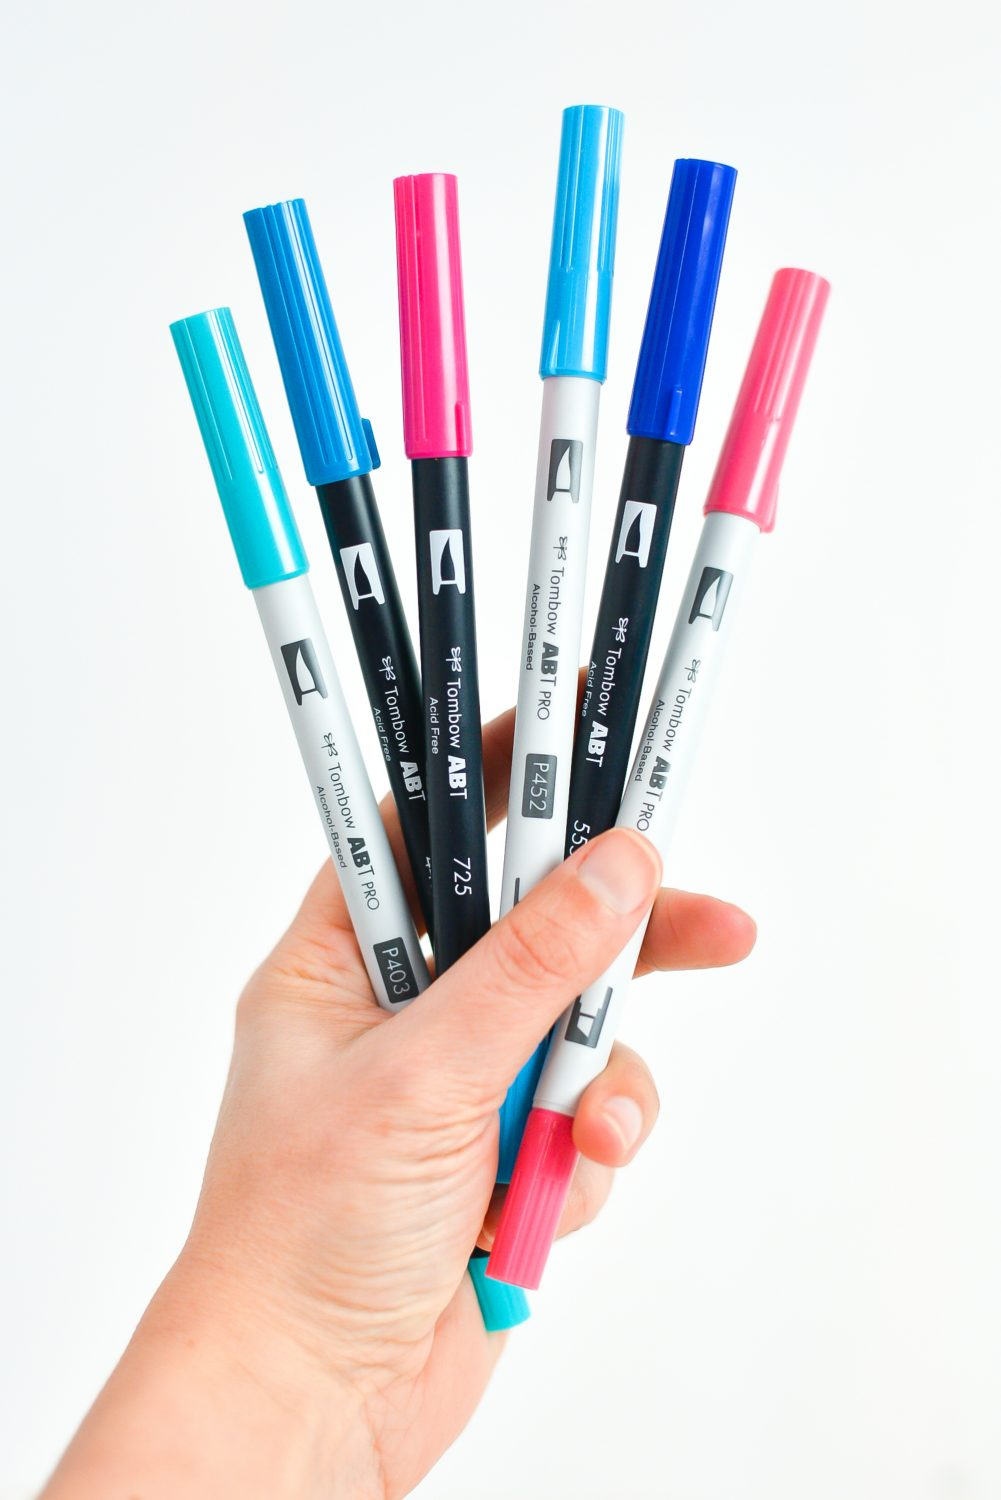 Hand holding a variety of Tombow pens